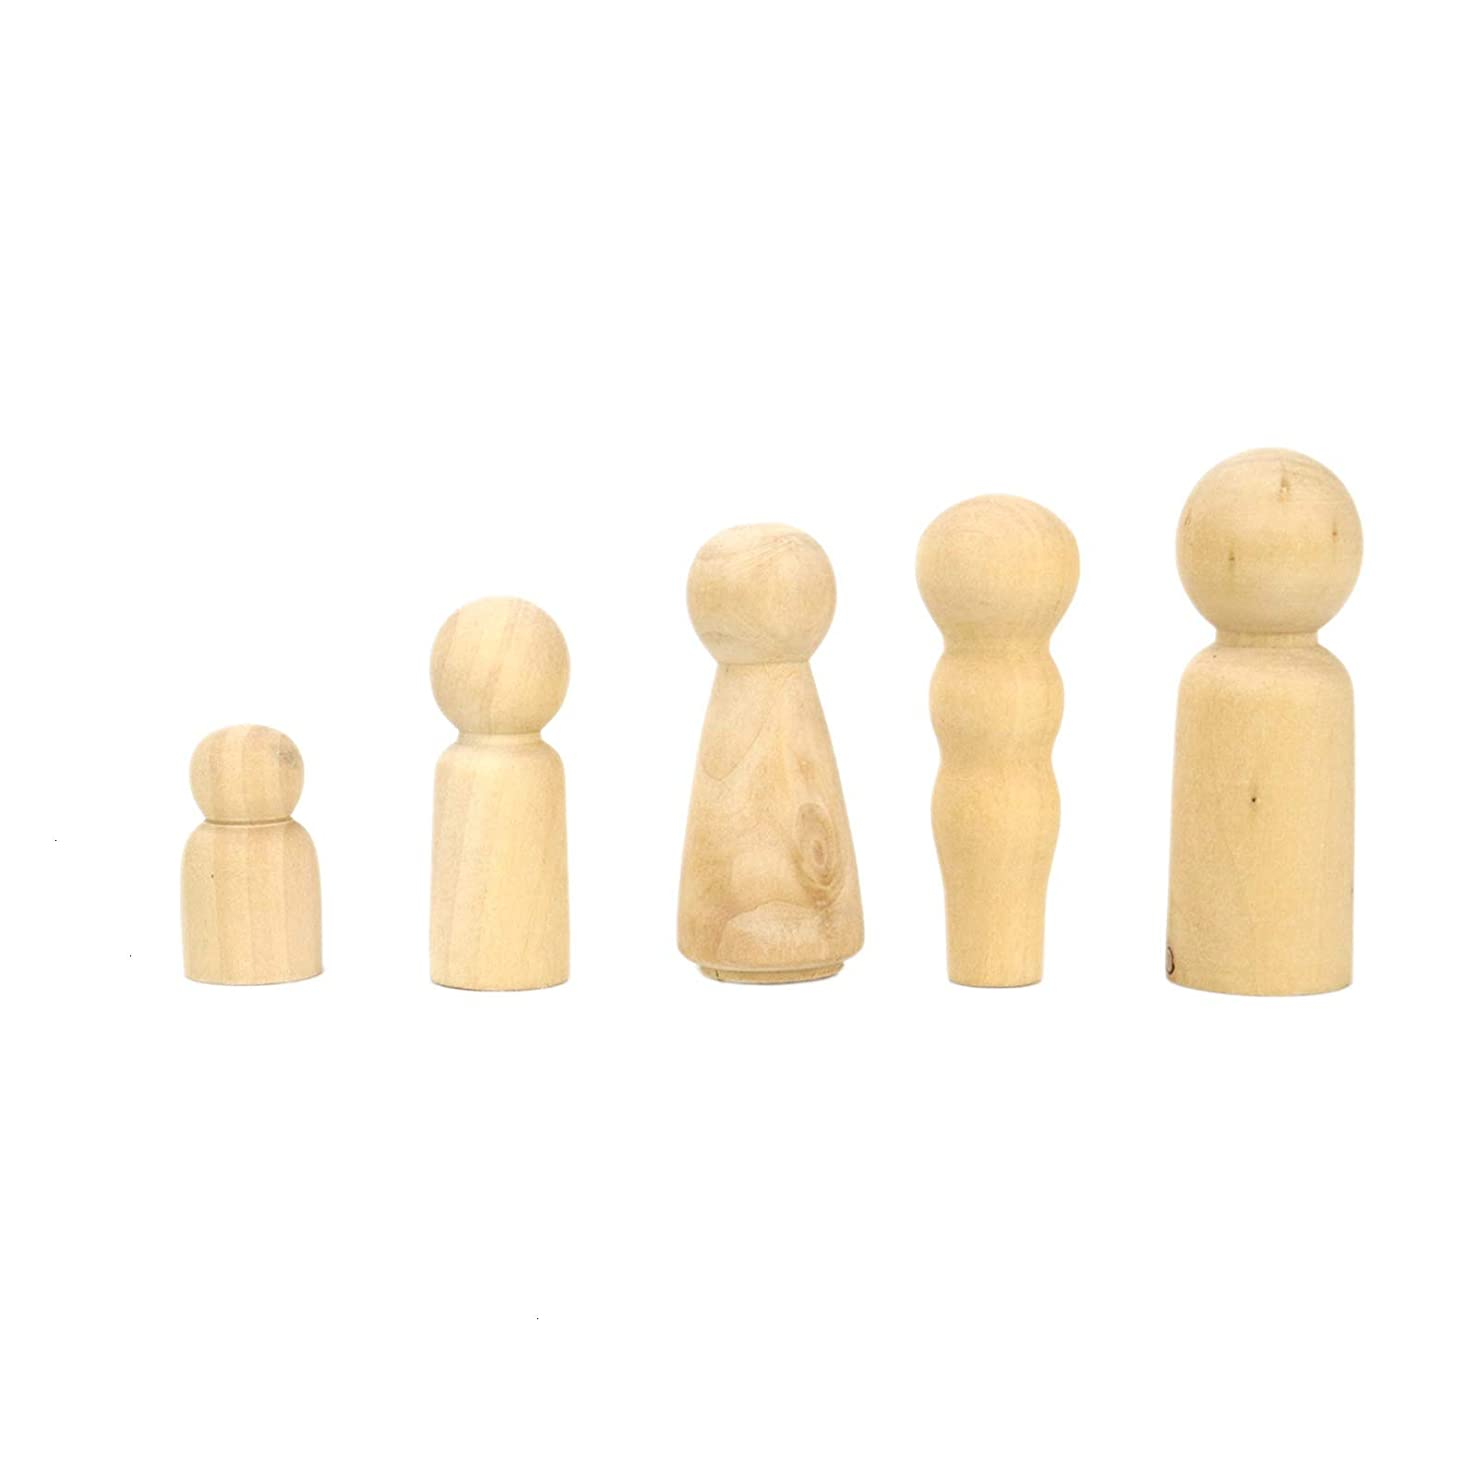 AQUEENLY Unfinished Wood Peg Doll Family Set - A Family of Five - Great for Arts and Crafts(2 Set)